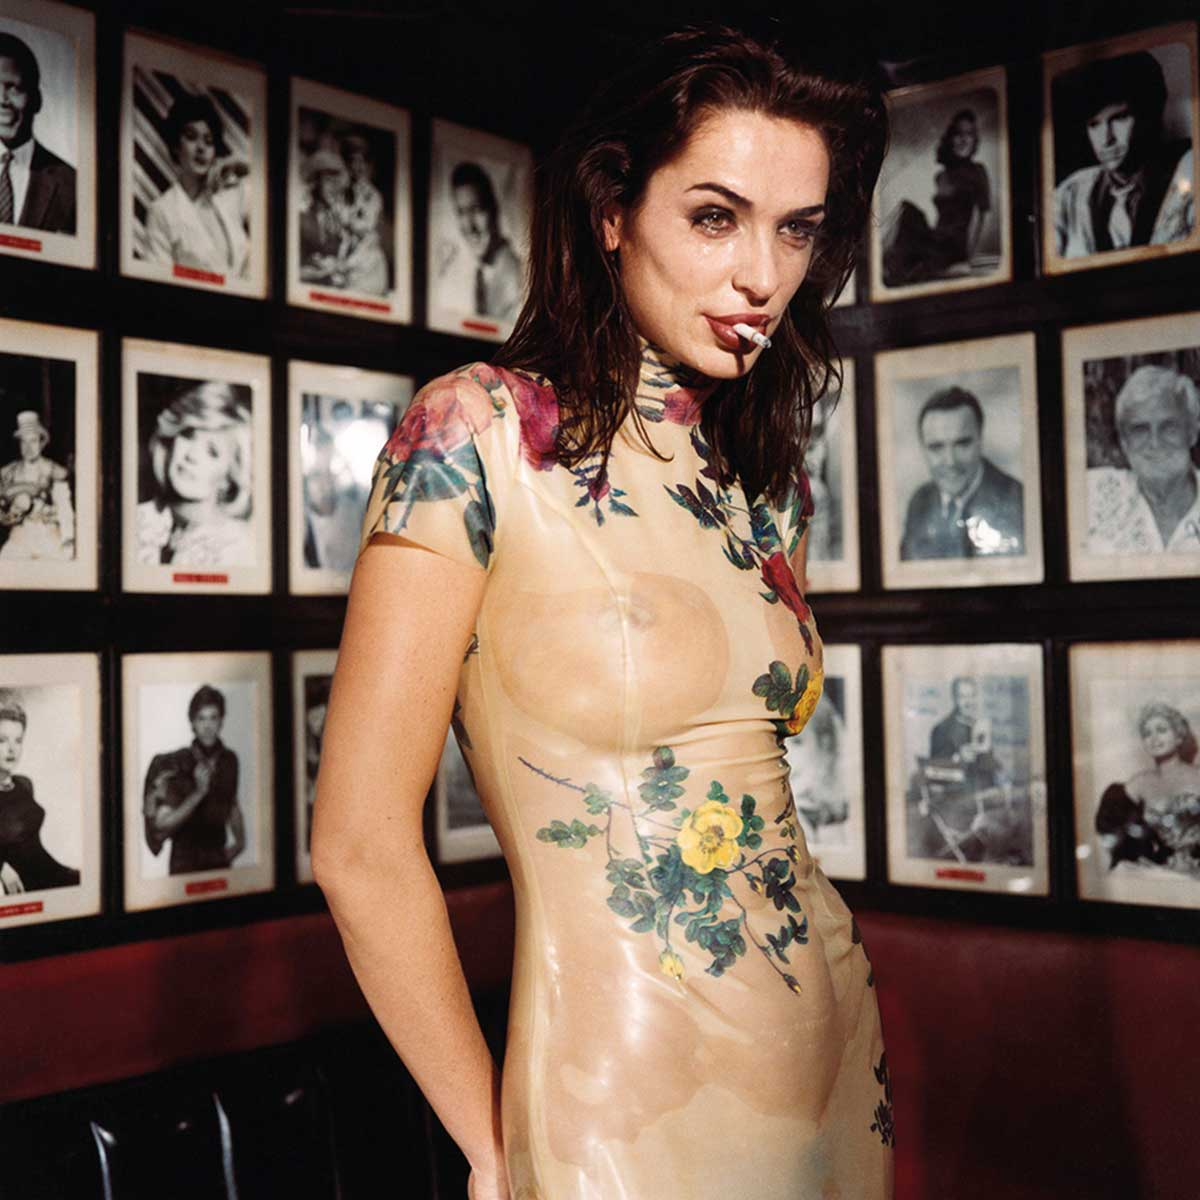 Claire Stansfield crying in the Formosa Café, February 1994, Los Angeles © Bettina Rheims